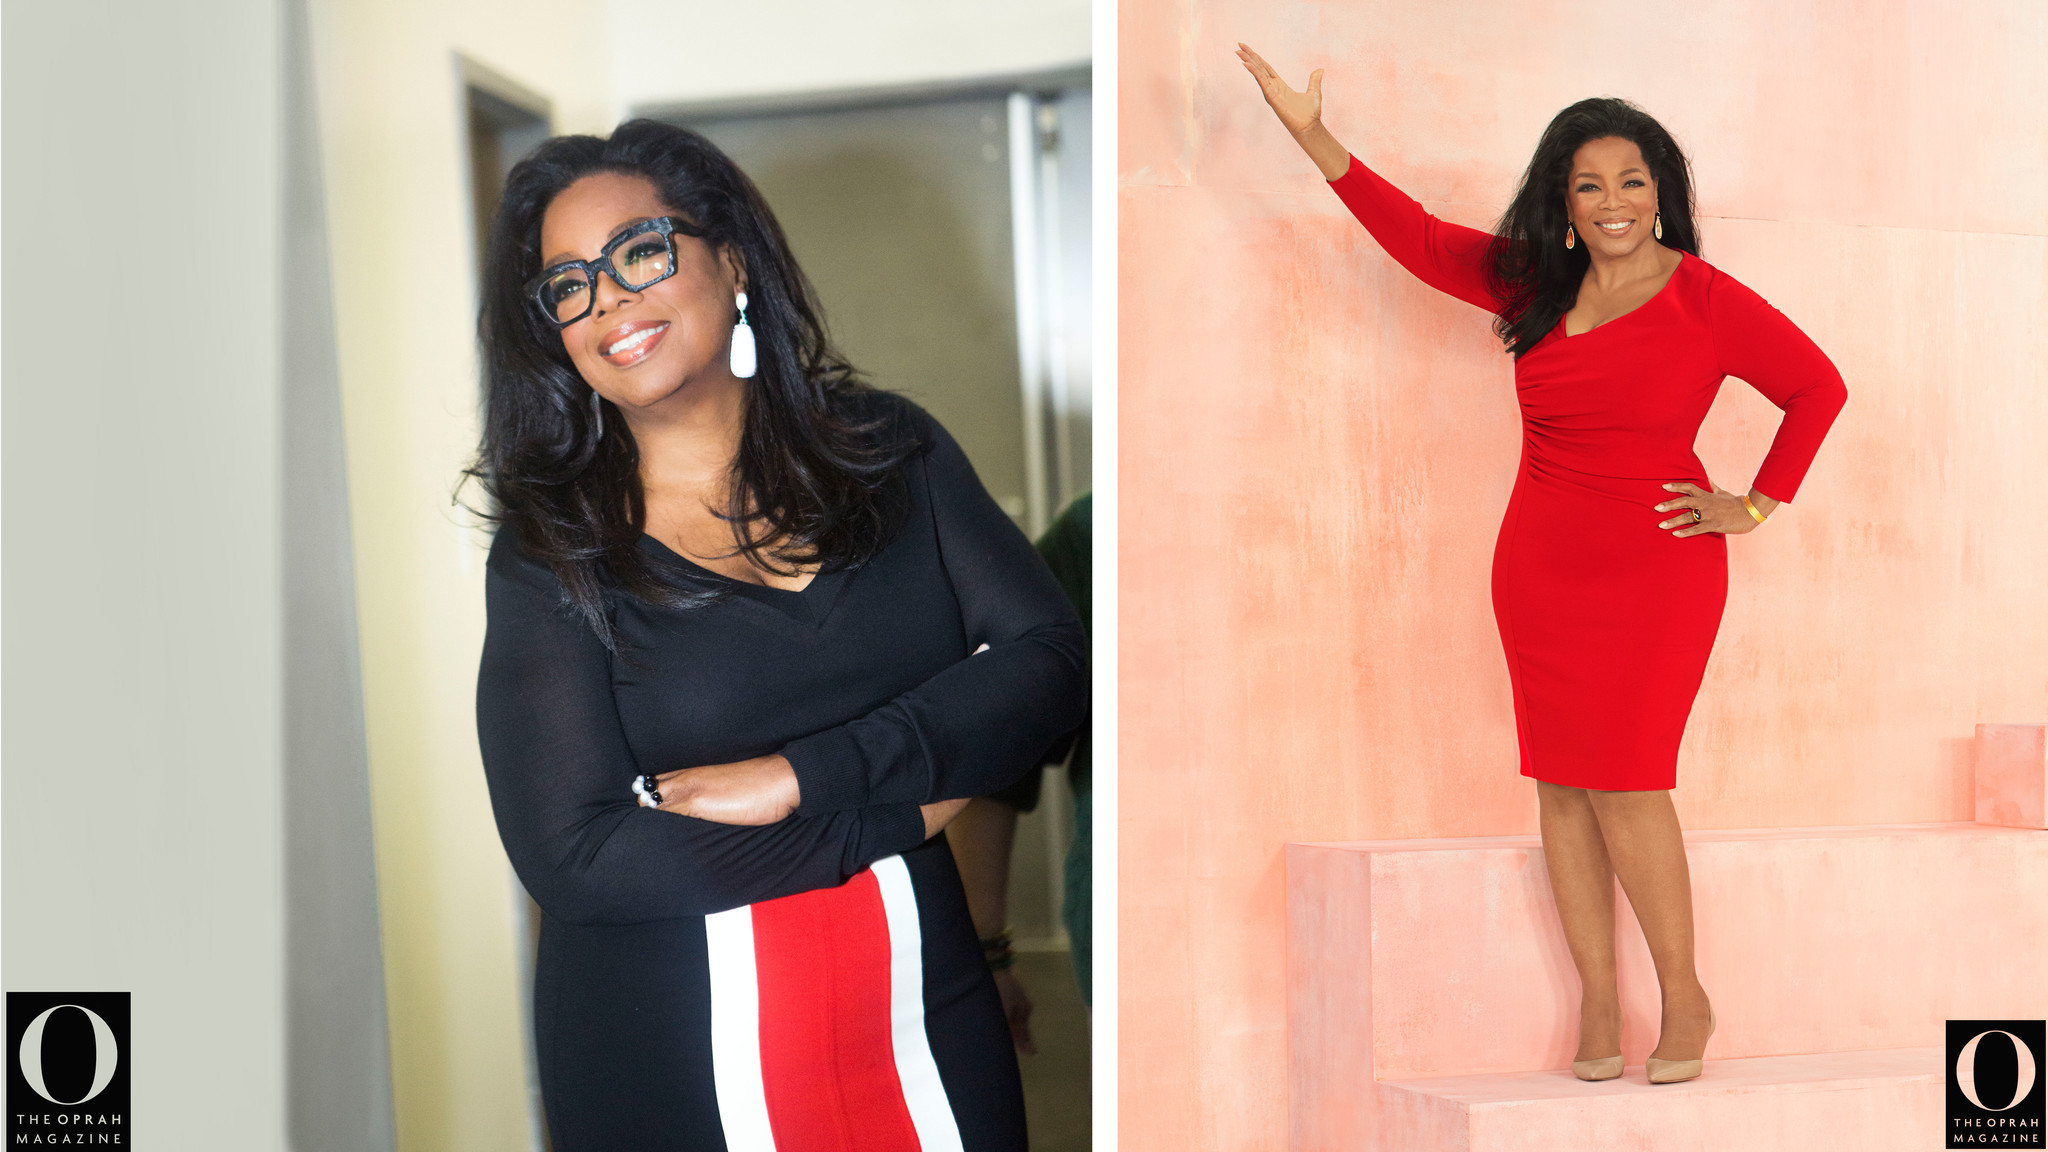 Oprah Winfrey shows off dramatic Weight Watchers weightloss on cover of O magazine